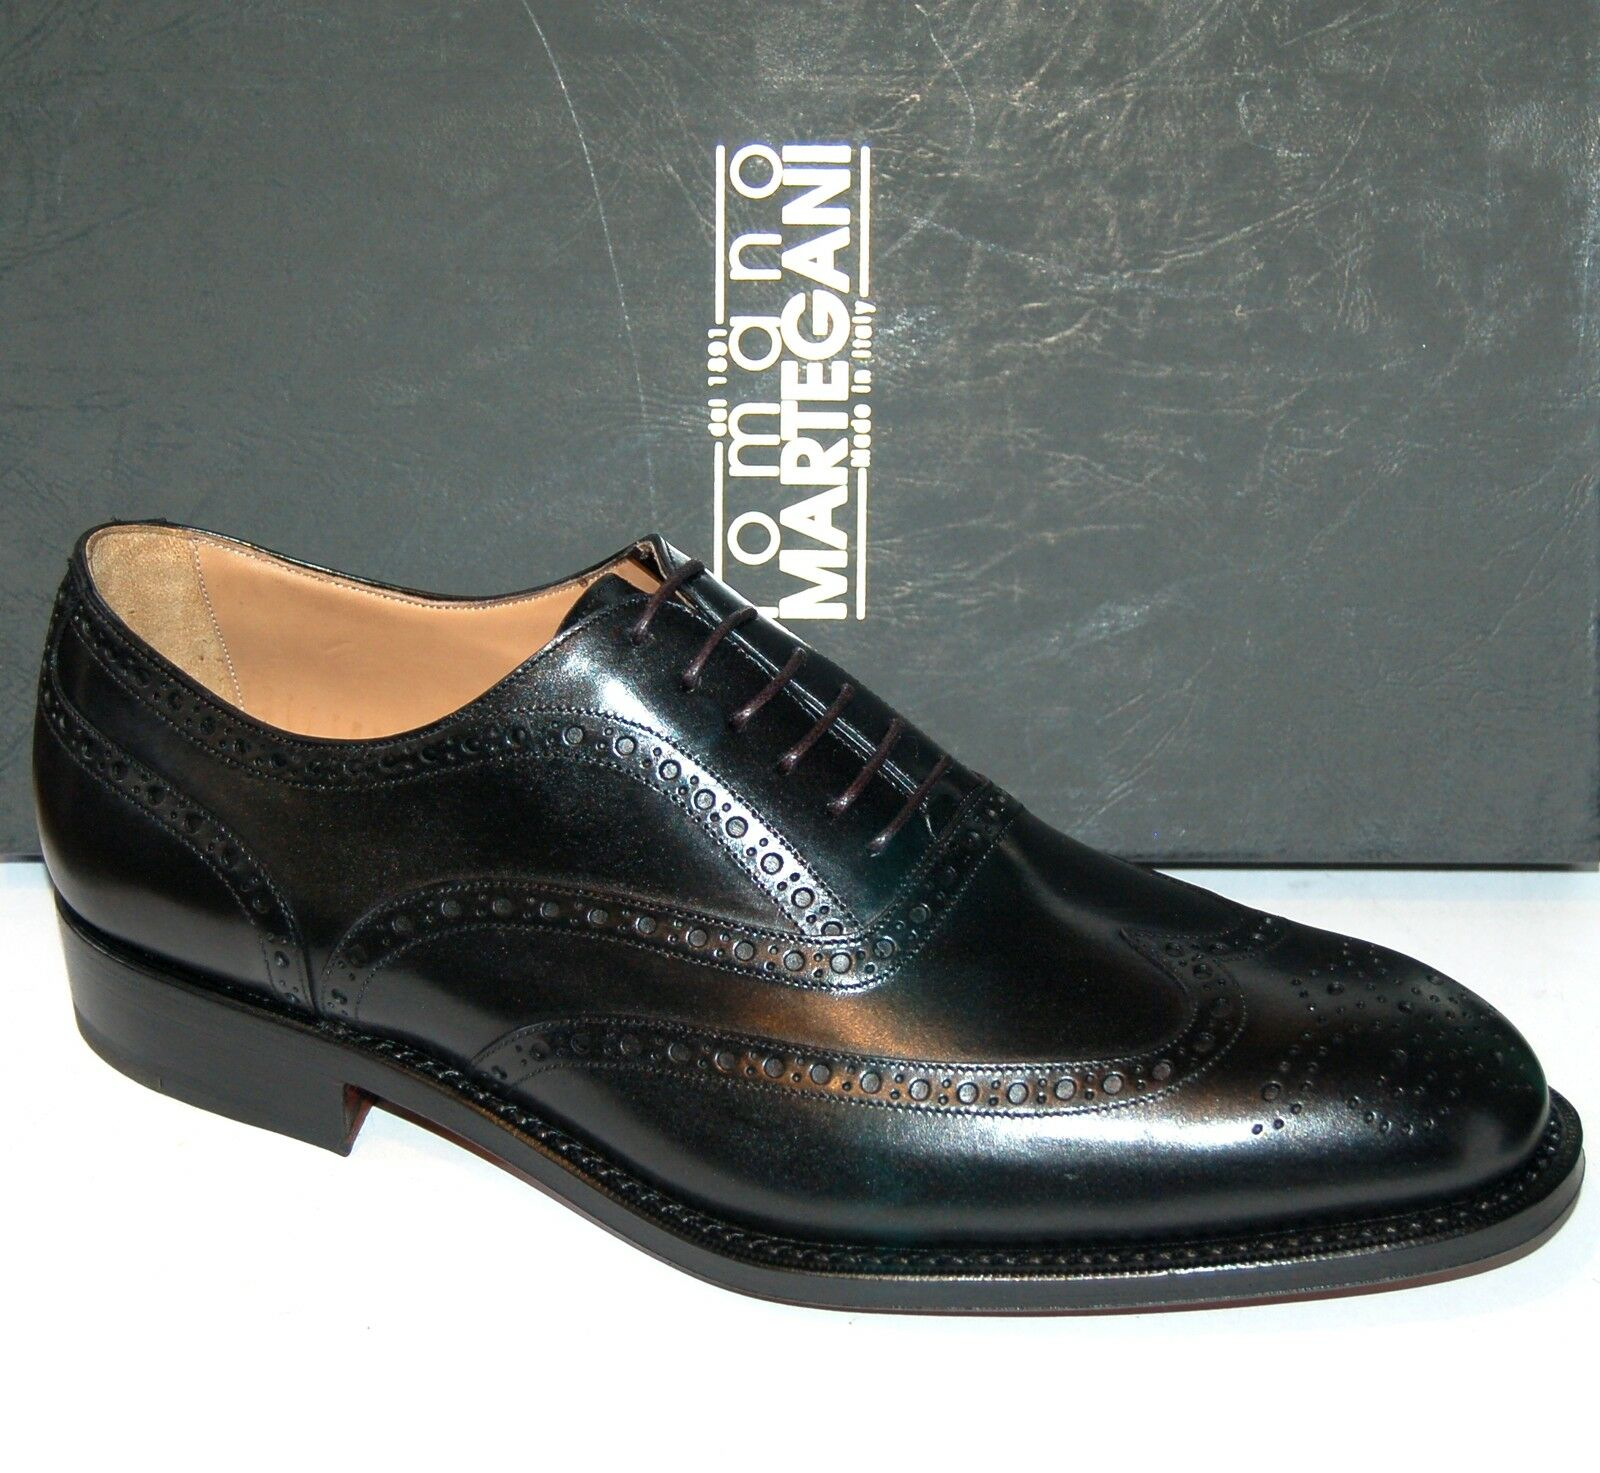 MAN - OXFORD WINGTIP - BLACK CALF W/ PERFS AND MEDALLION - LEATHER SOLE - BLAKE